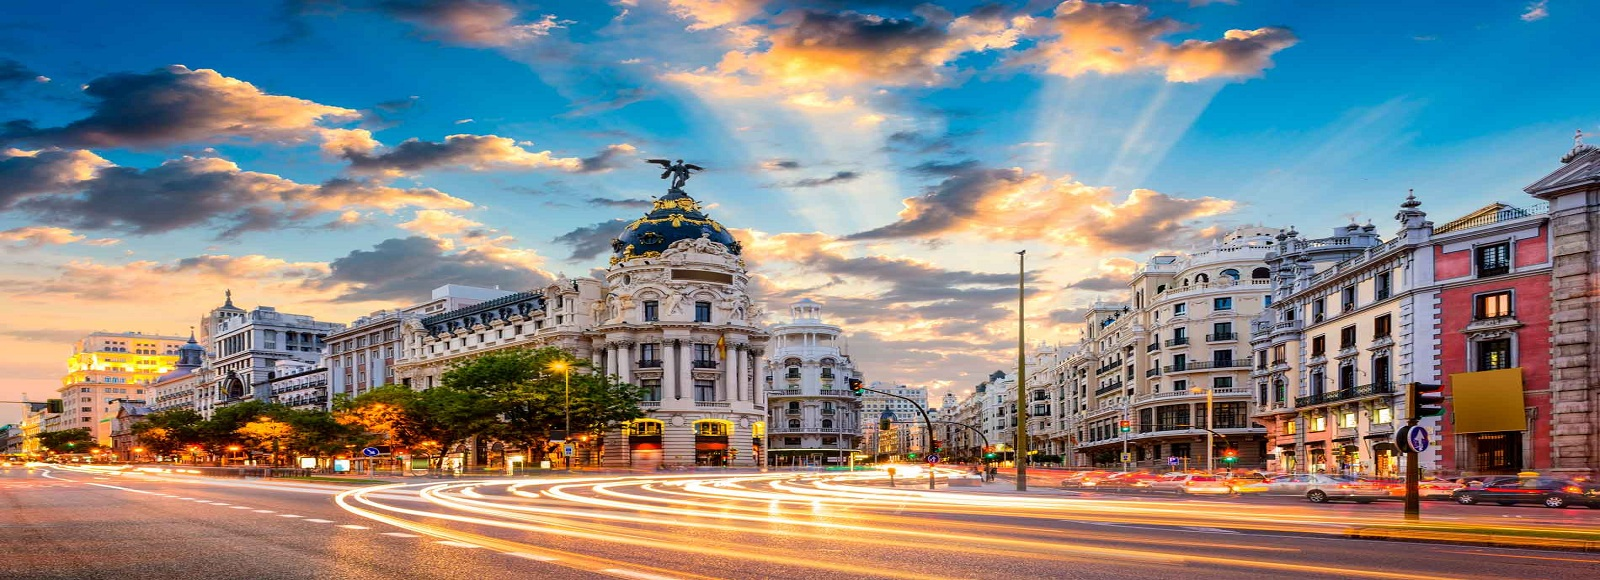 Travel to  Spain .  Spain